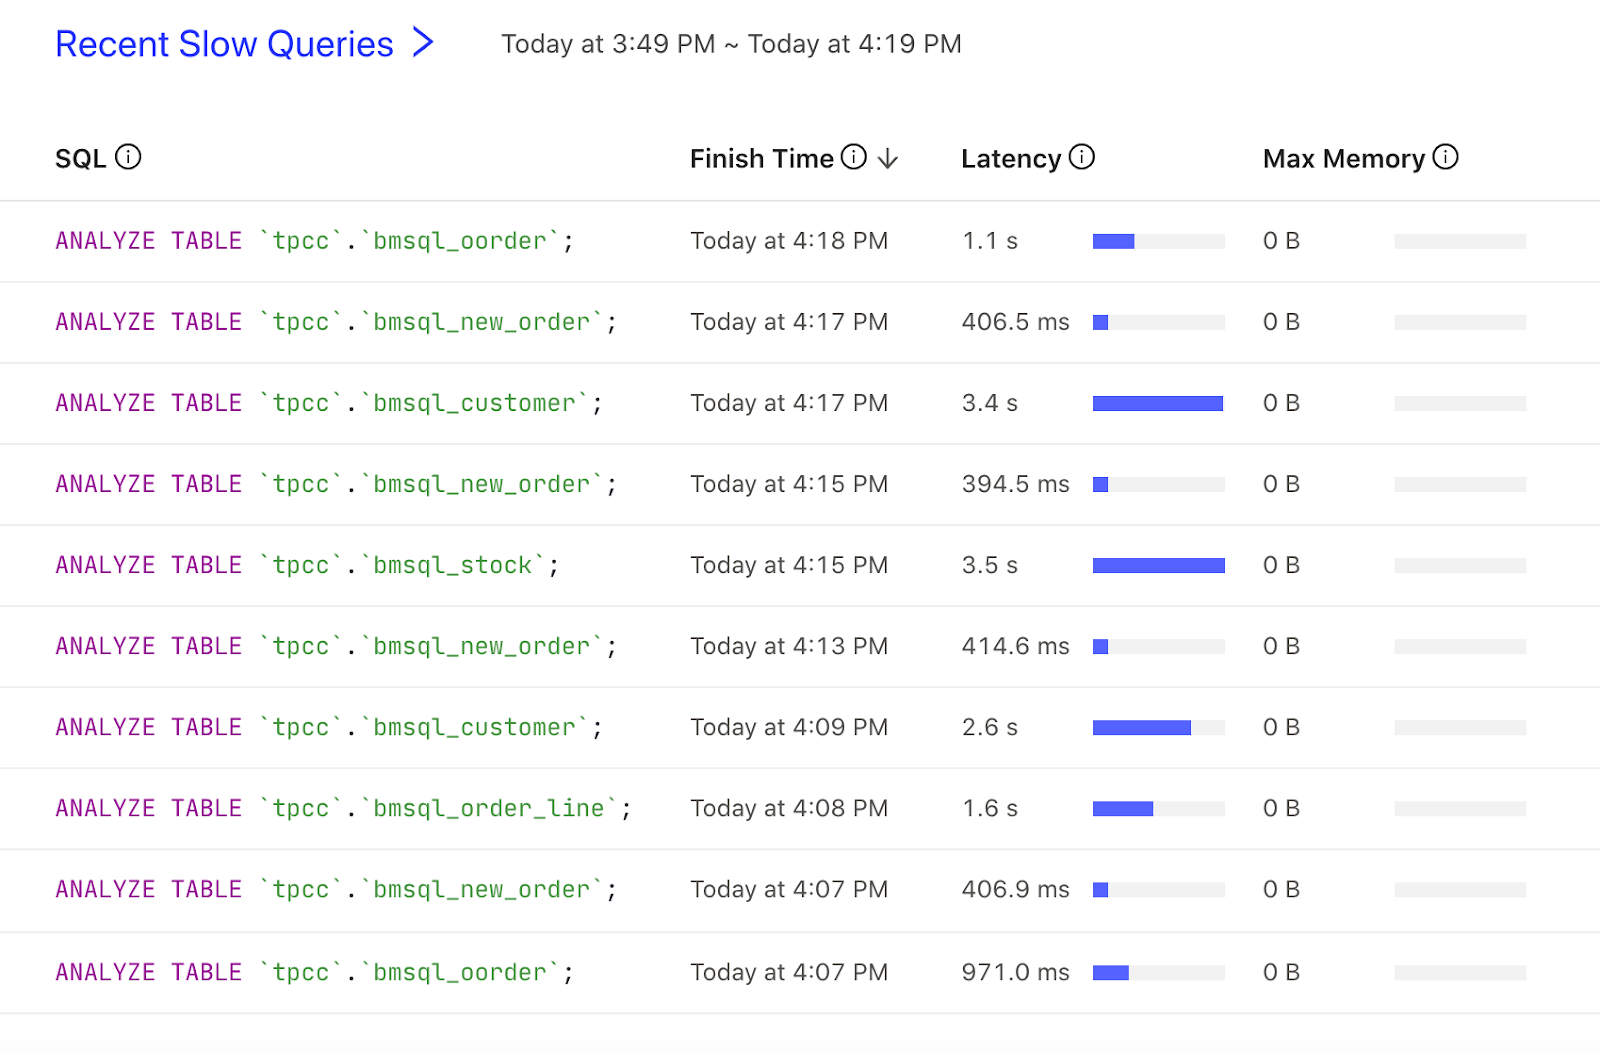 Recent slow queries